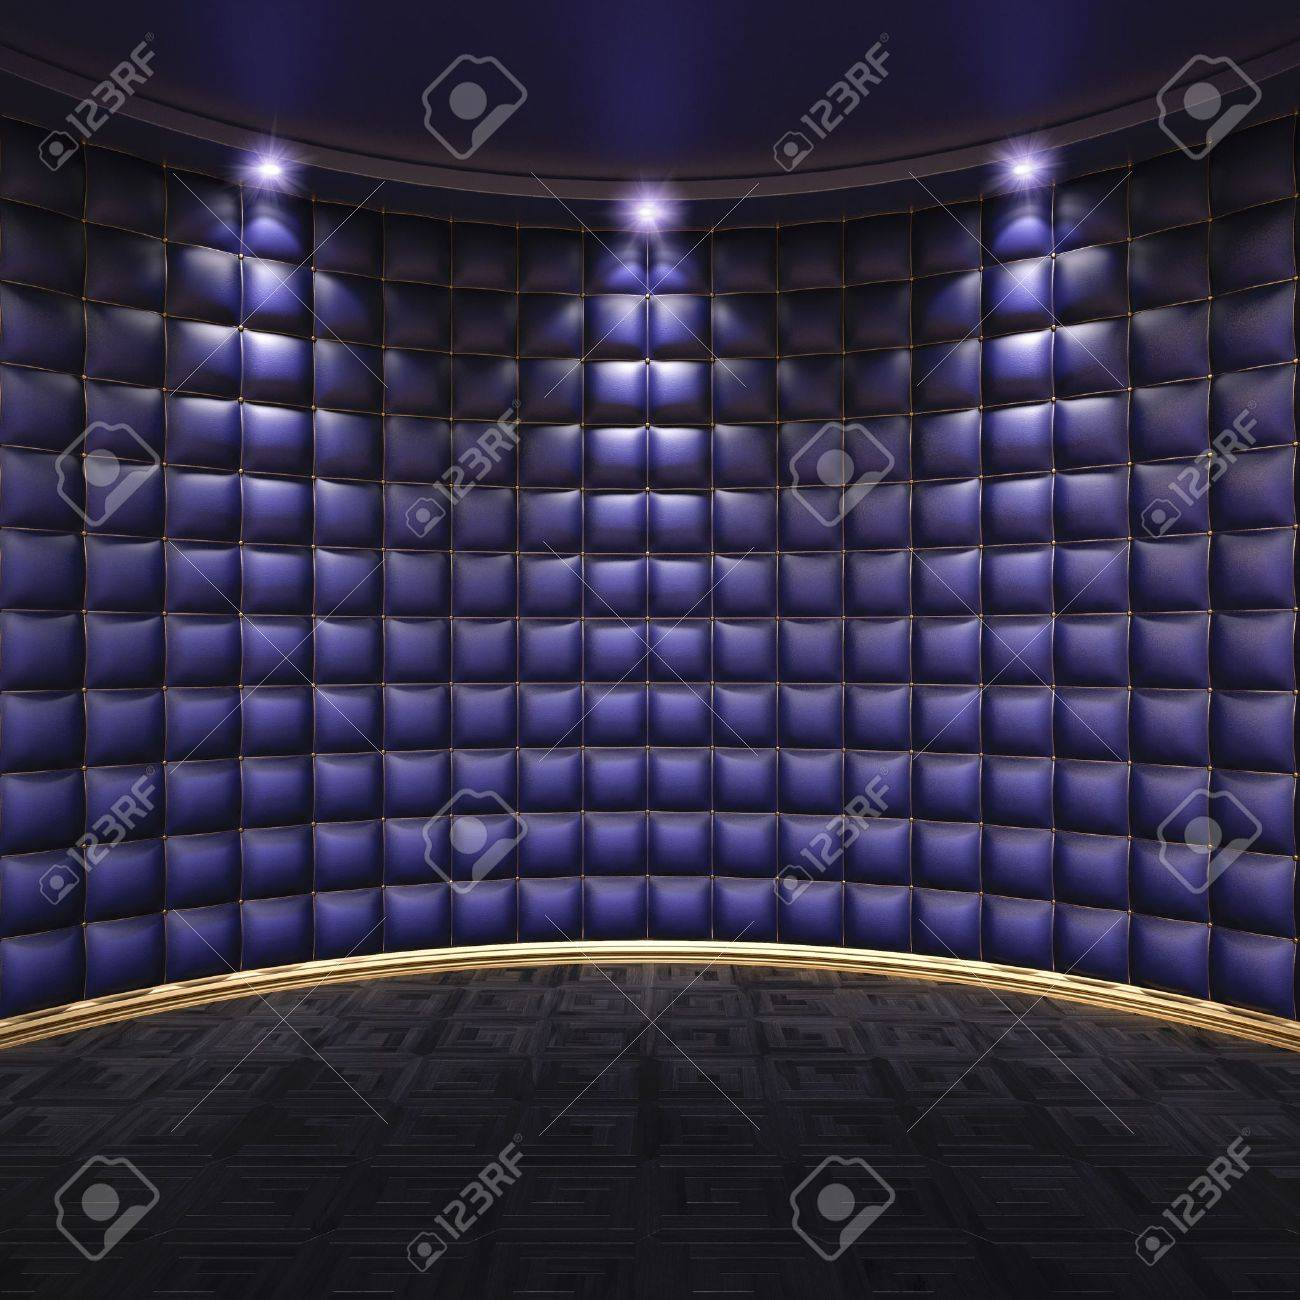 luxurious interior with leather walls and wooden parquet stock luxurious interior with leather walls and wooden parquet stock photo 12309808